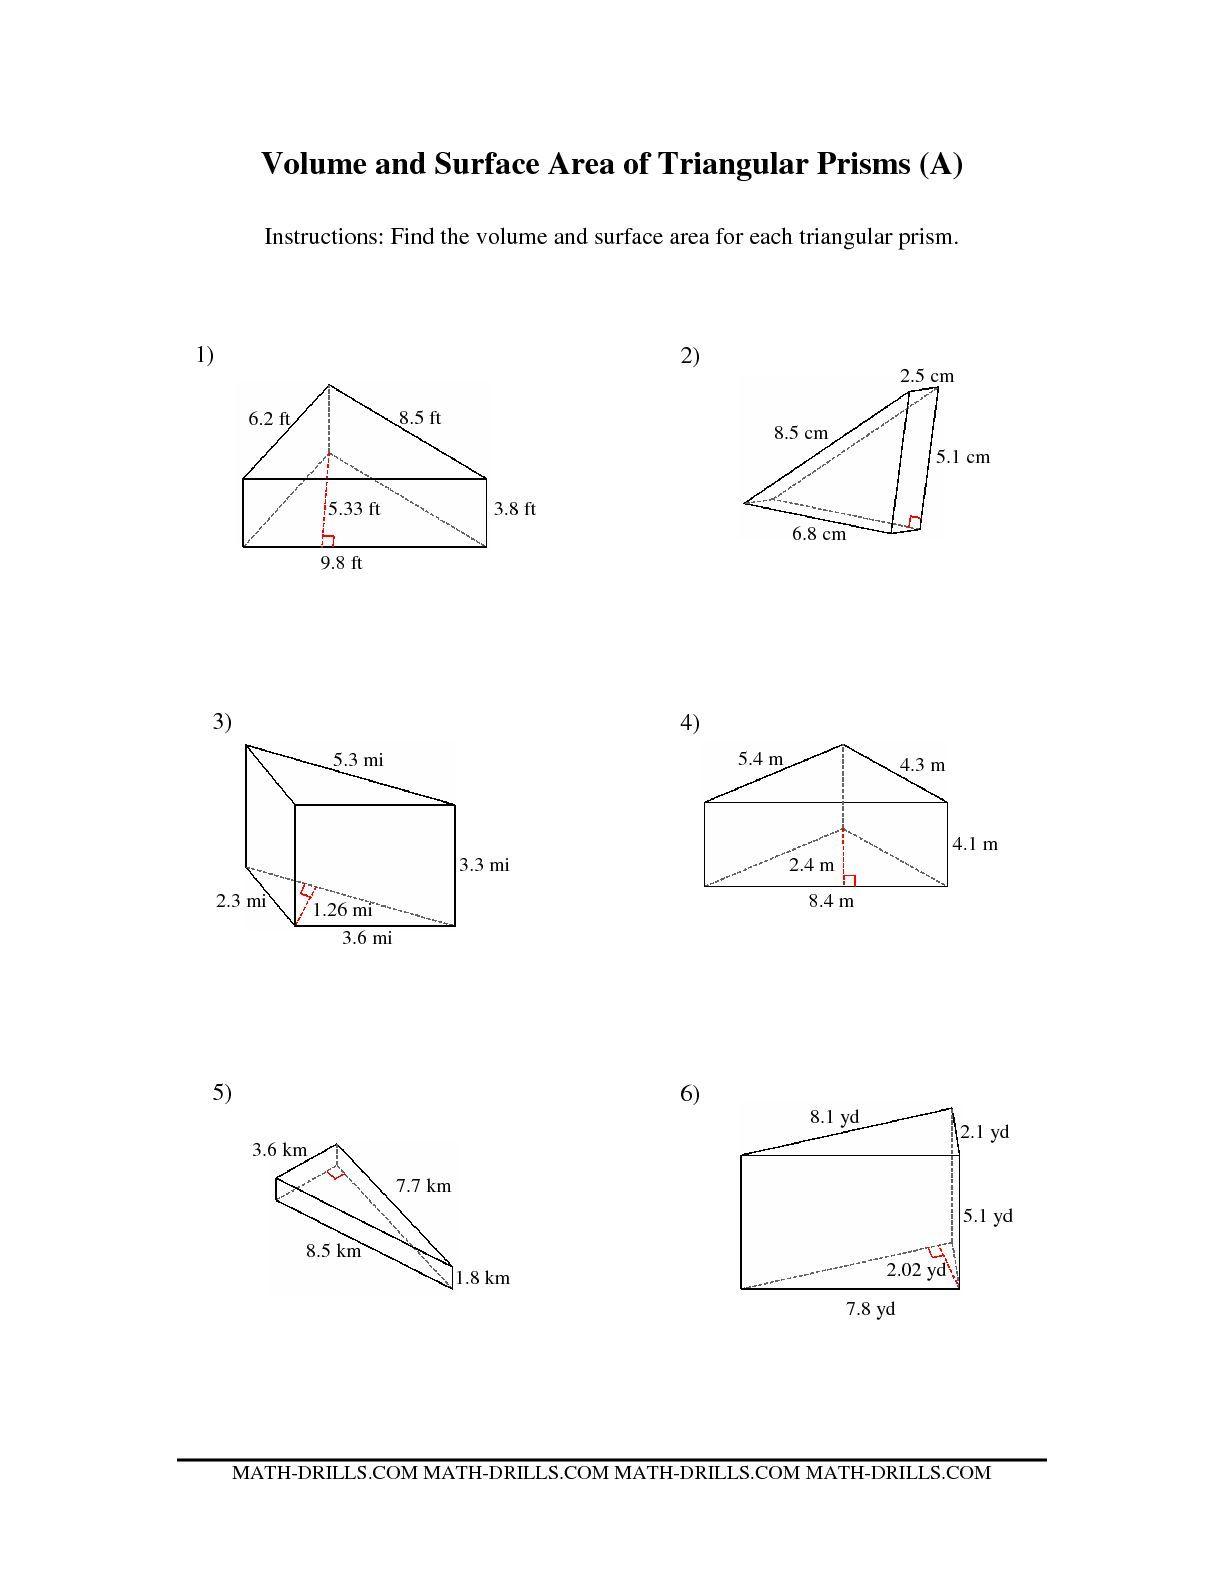 Uncategorized Surface Area Of Rectangular Prism Worksheet the volume and surface area of triangular prisms a math worksheet from measurement